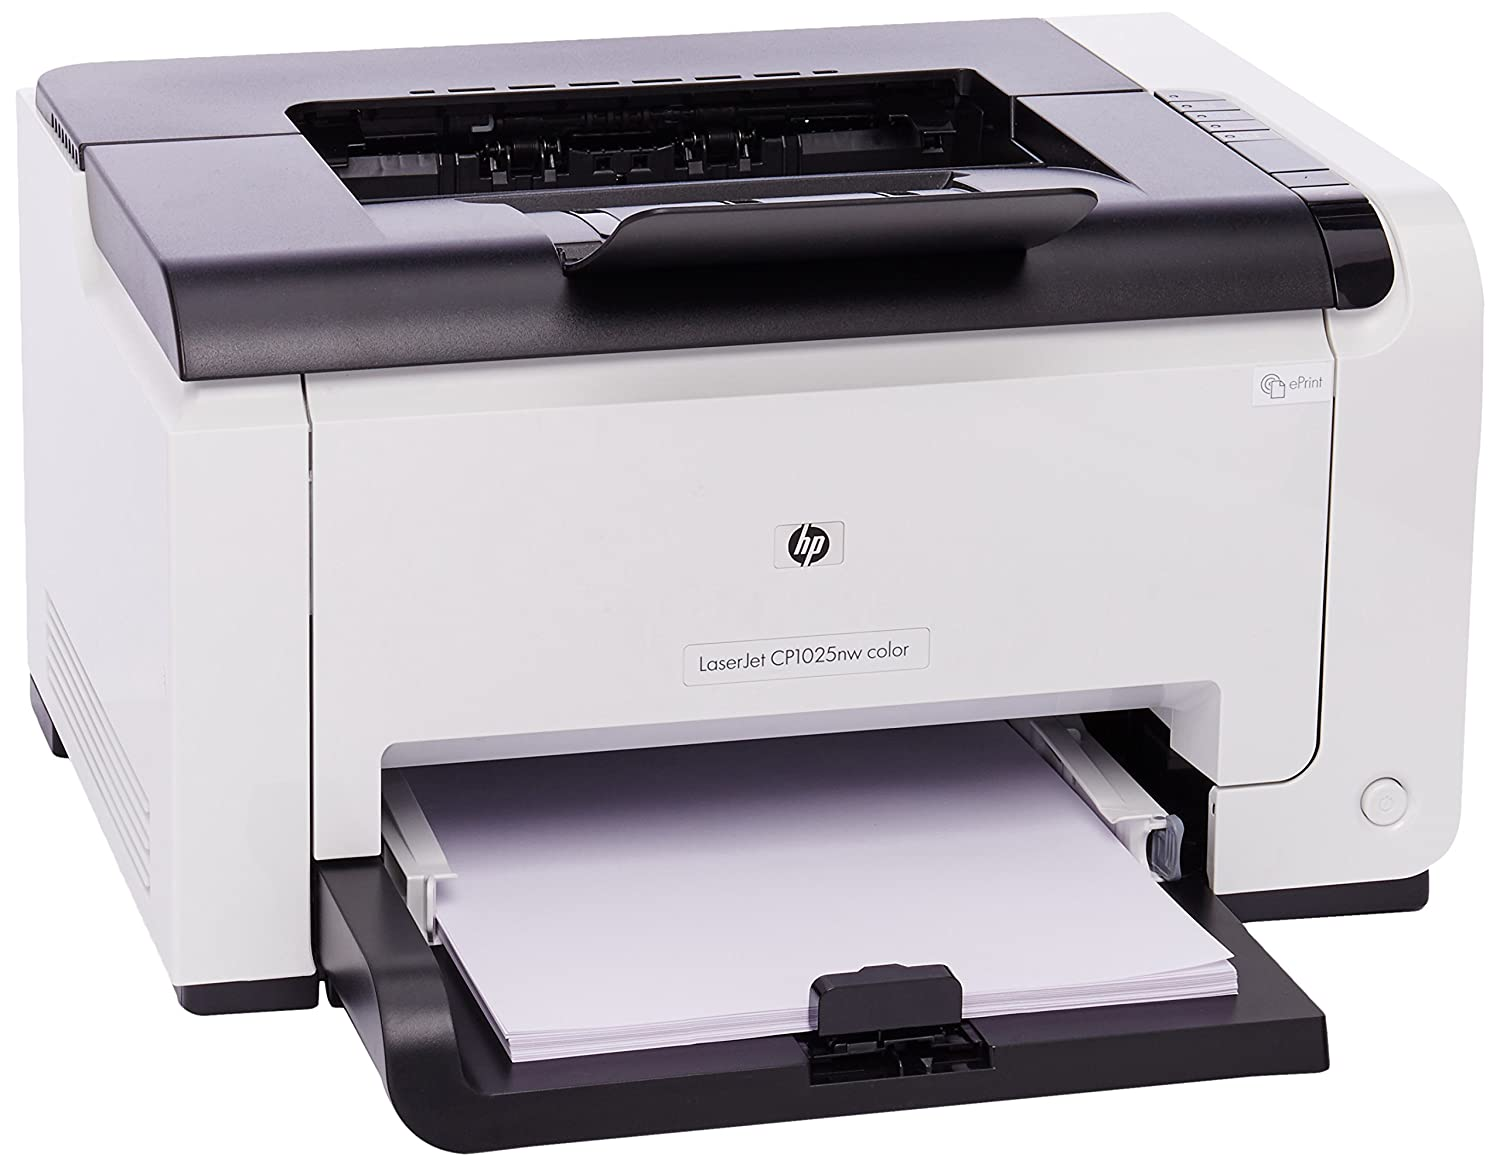 Affordable Amazoncom Hp Laserjet Pro Cpnw Color Printer Lowest Cost Per Page Color Printer